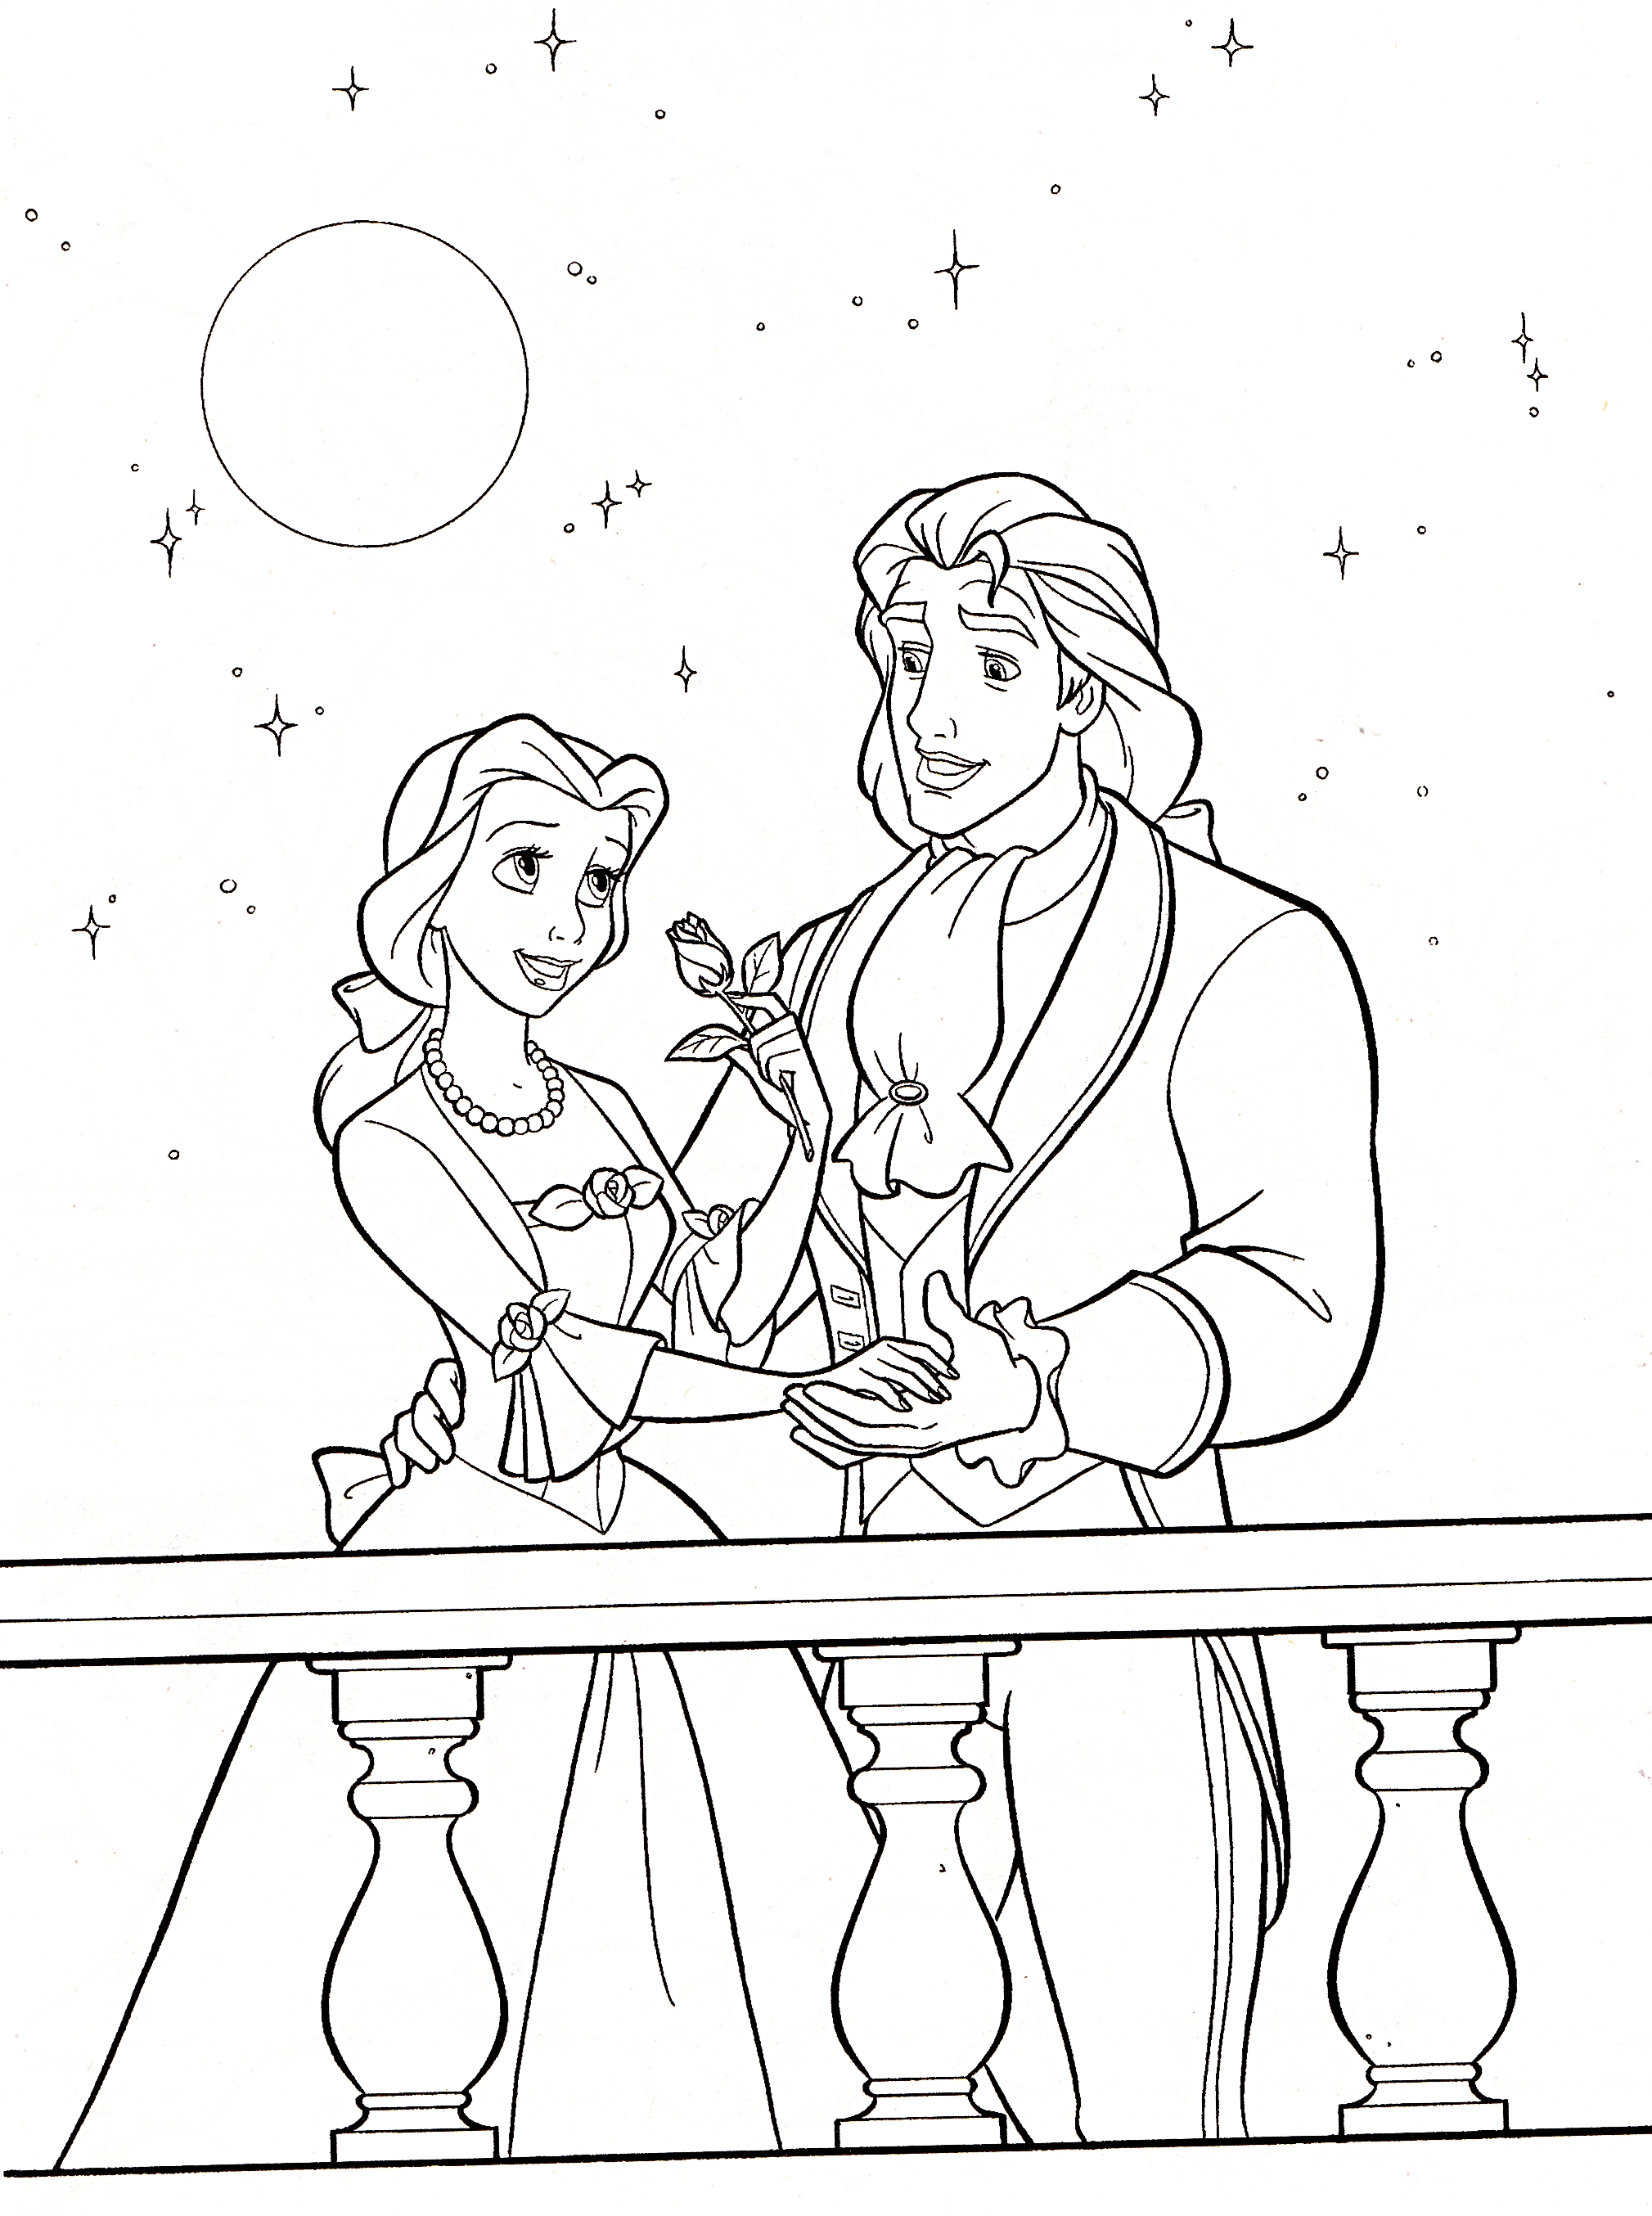 Coloring Pages Beauty And The Beast : Walt disney characters images coloring pages